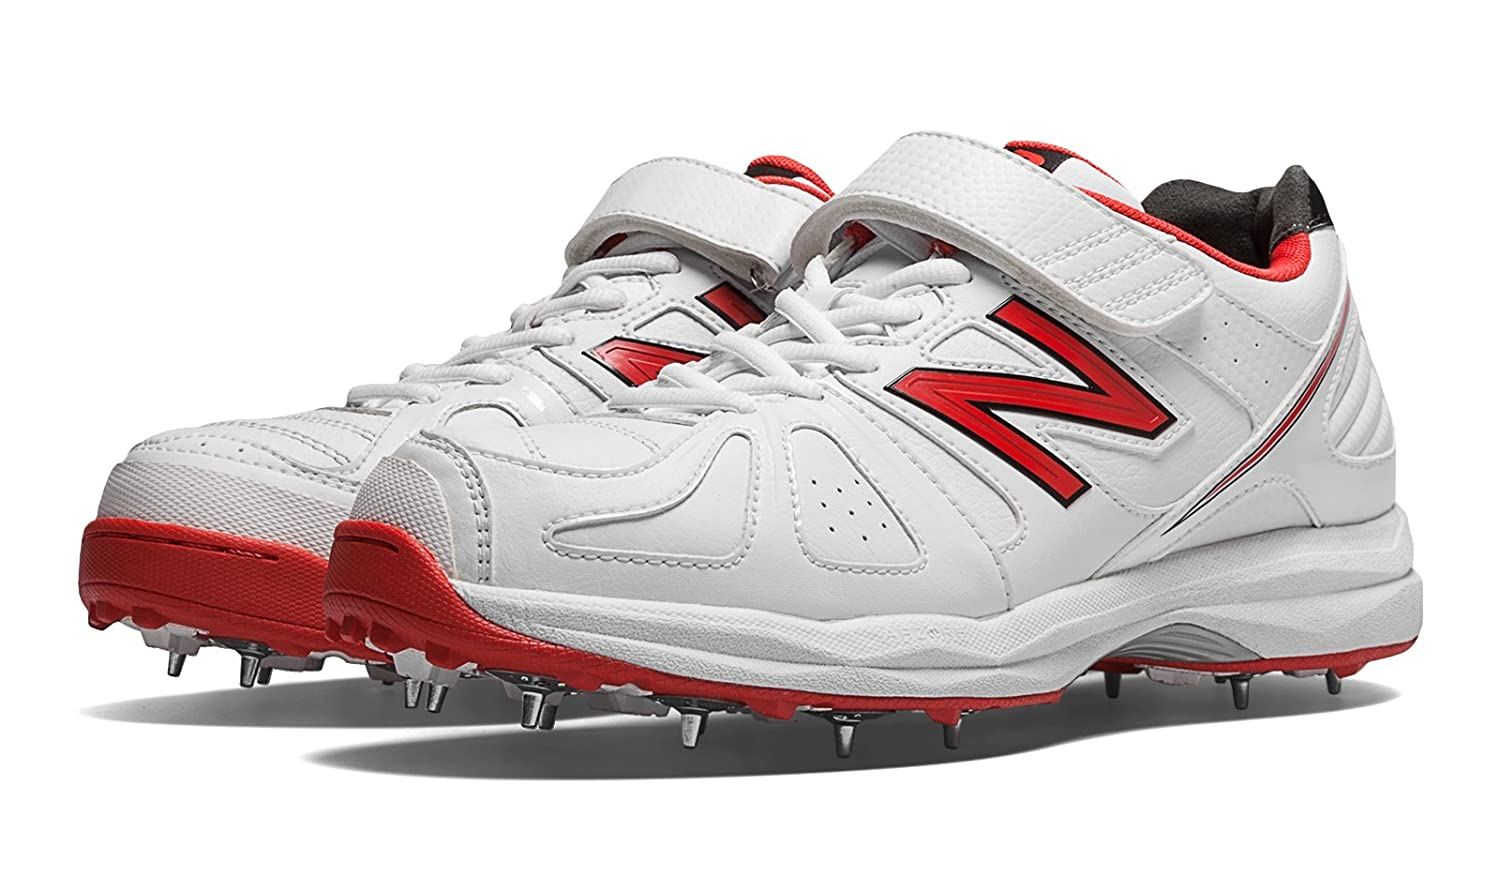 new balance red. new balance ck4040av cricket spikes (white/red): amazon.in: sports, fitness \u0026 outdoors red